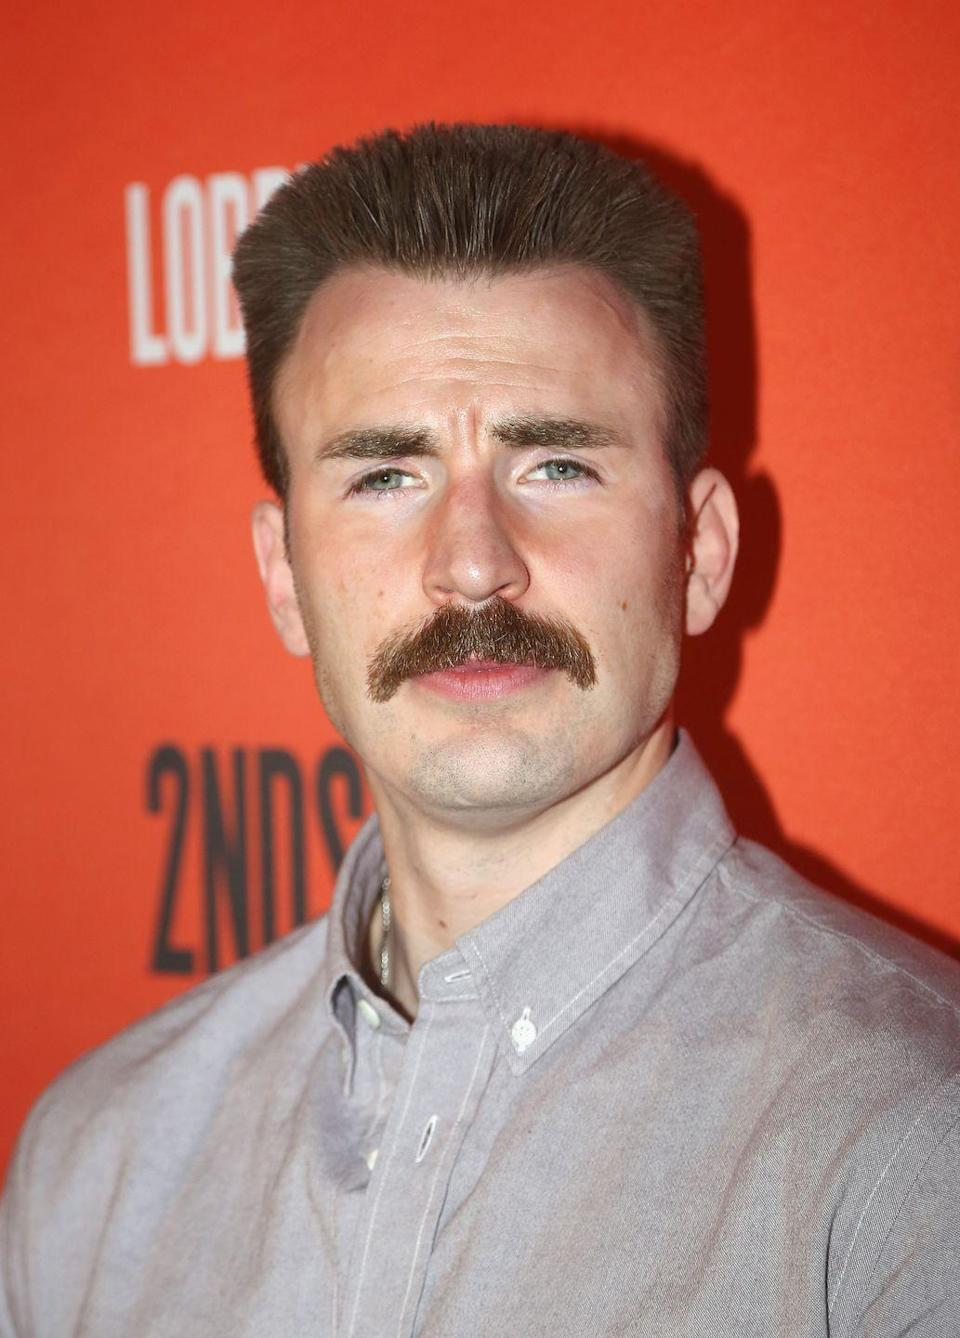 <p>The internet was outraged when they saw Chris Evans sporting a mustache on the red carpet, but later calmed down when they found out it was for his role as a cop in the Broadway play <em>Lobby Hero.</em></p>